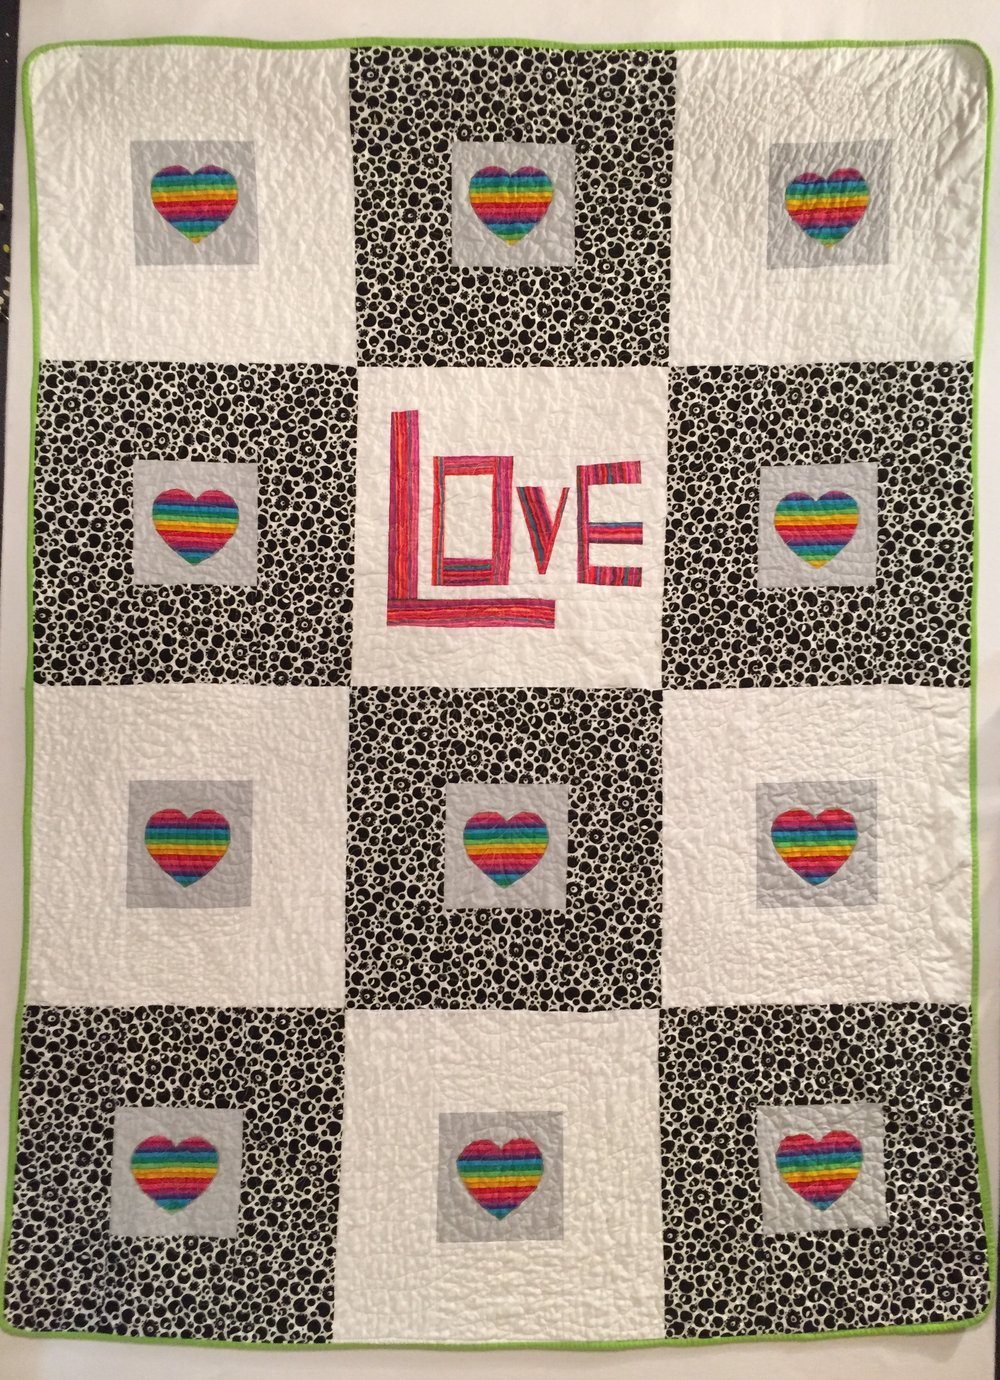 04 Quilted by Patti Auten